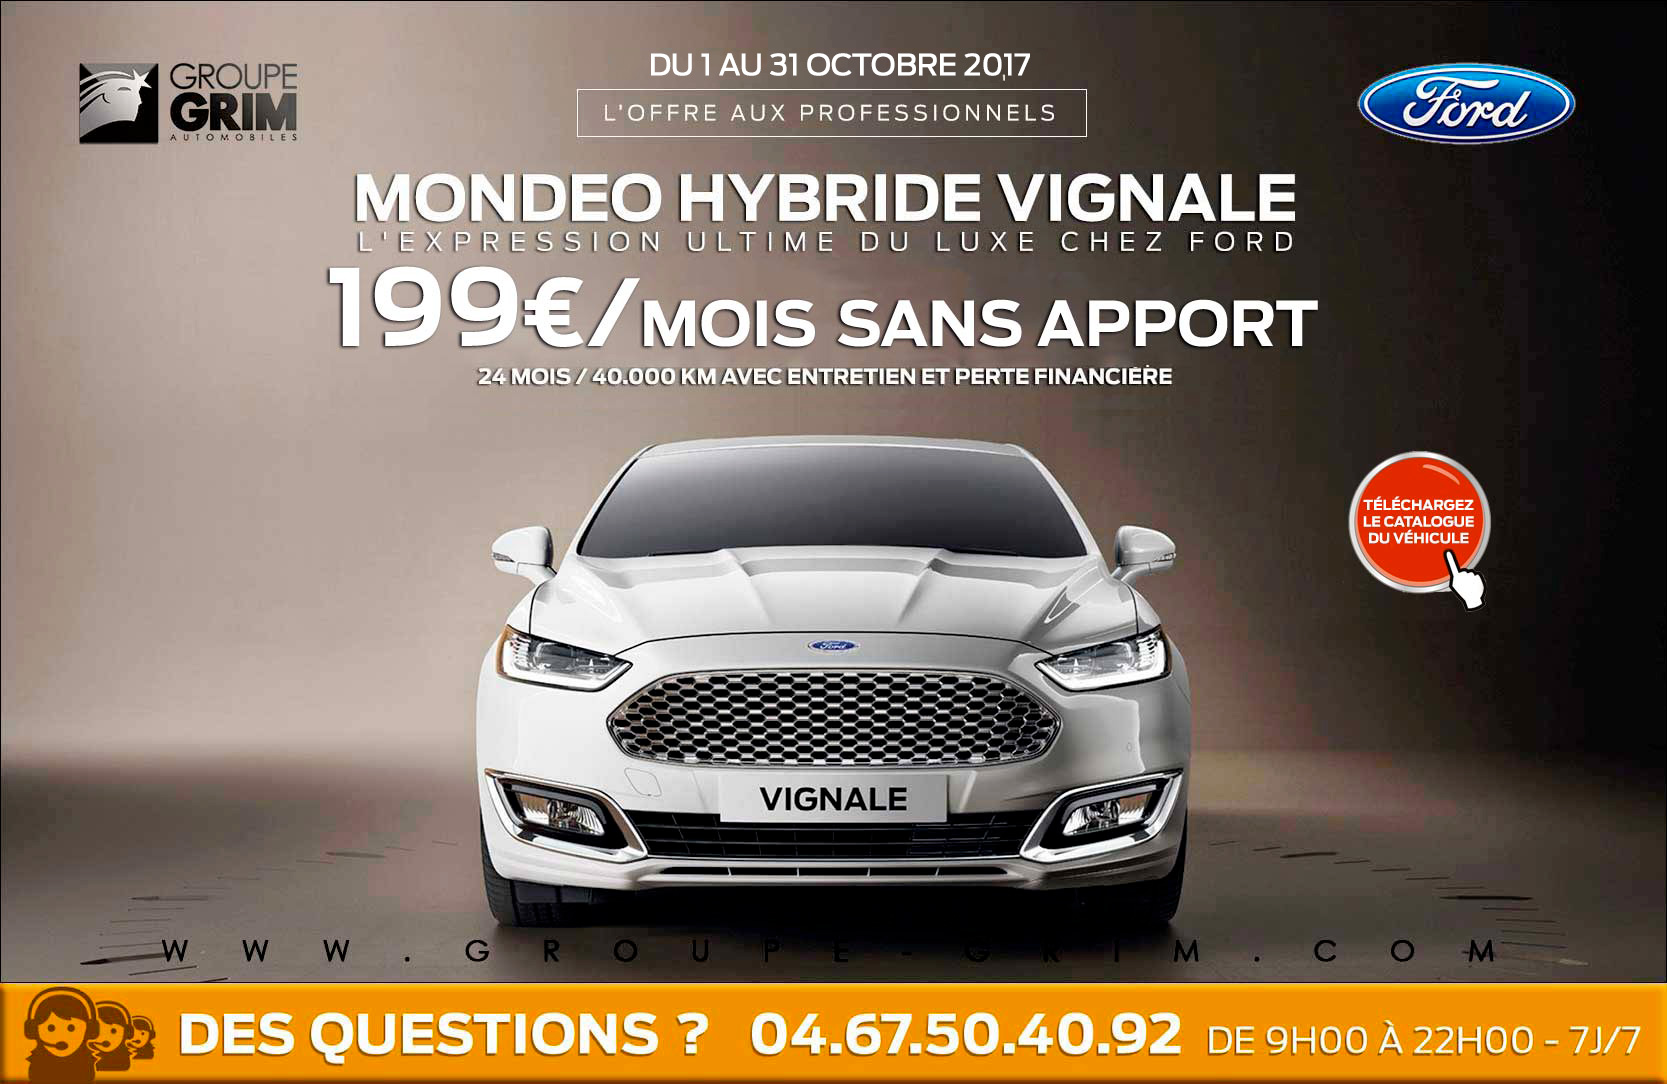 Mondeo hybride vignale a 199 mois sans apport ford for Garage ford saval valence